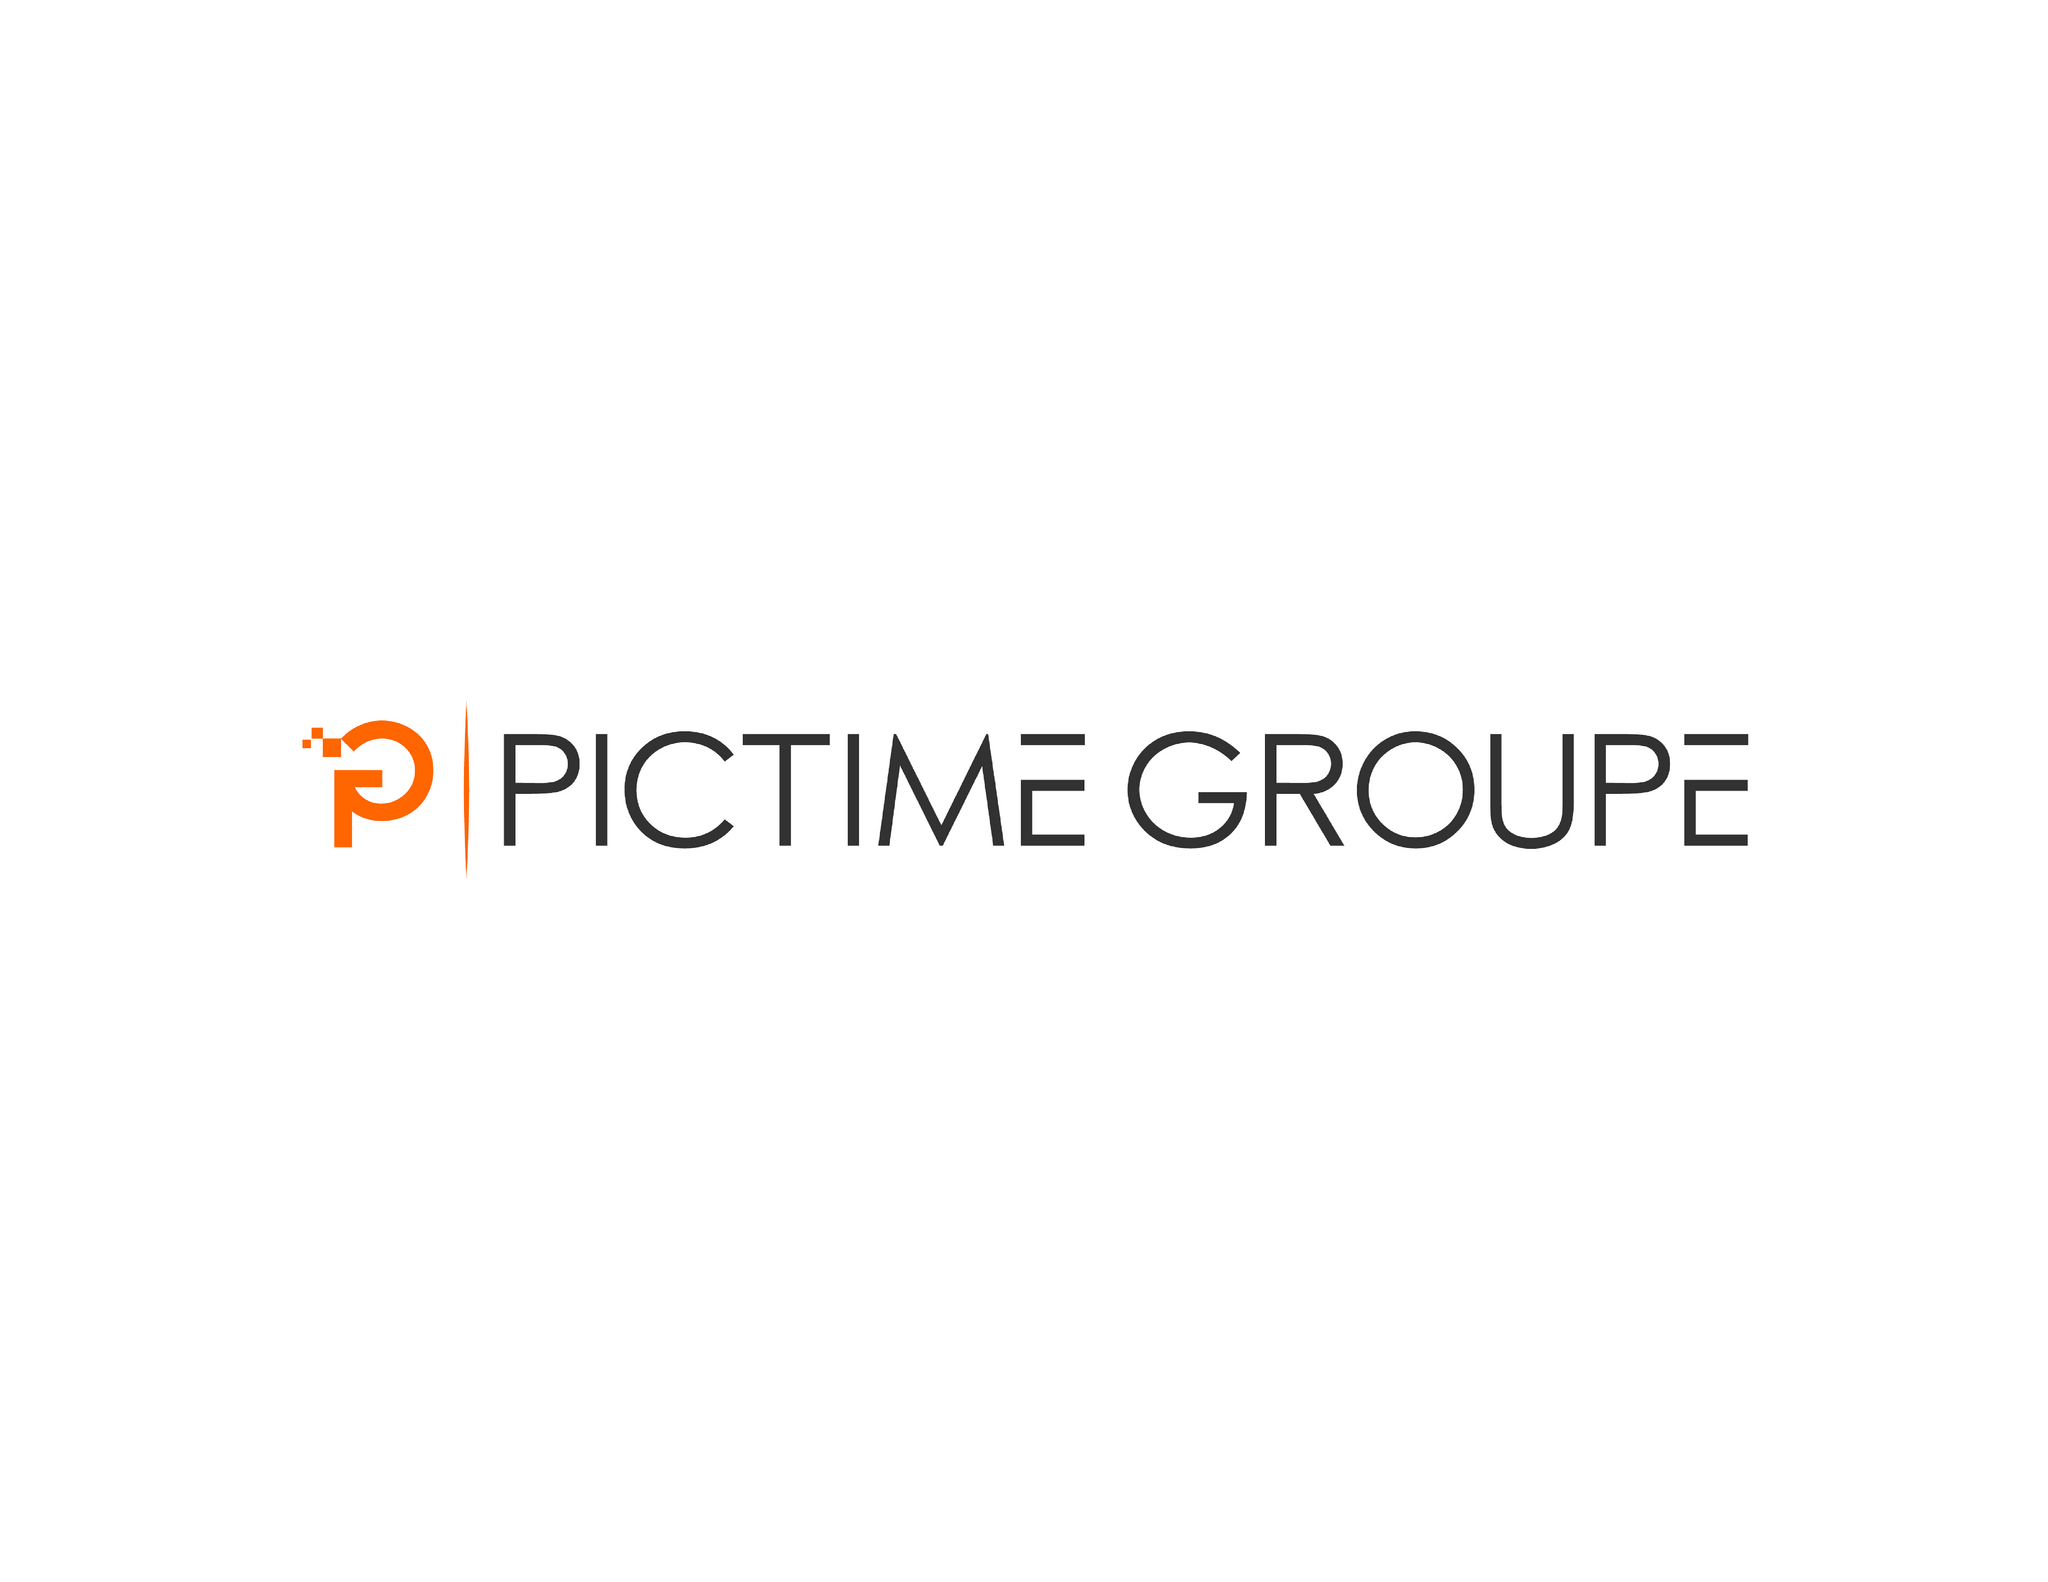 Pictime Groupe